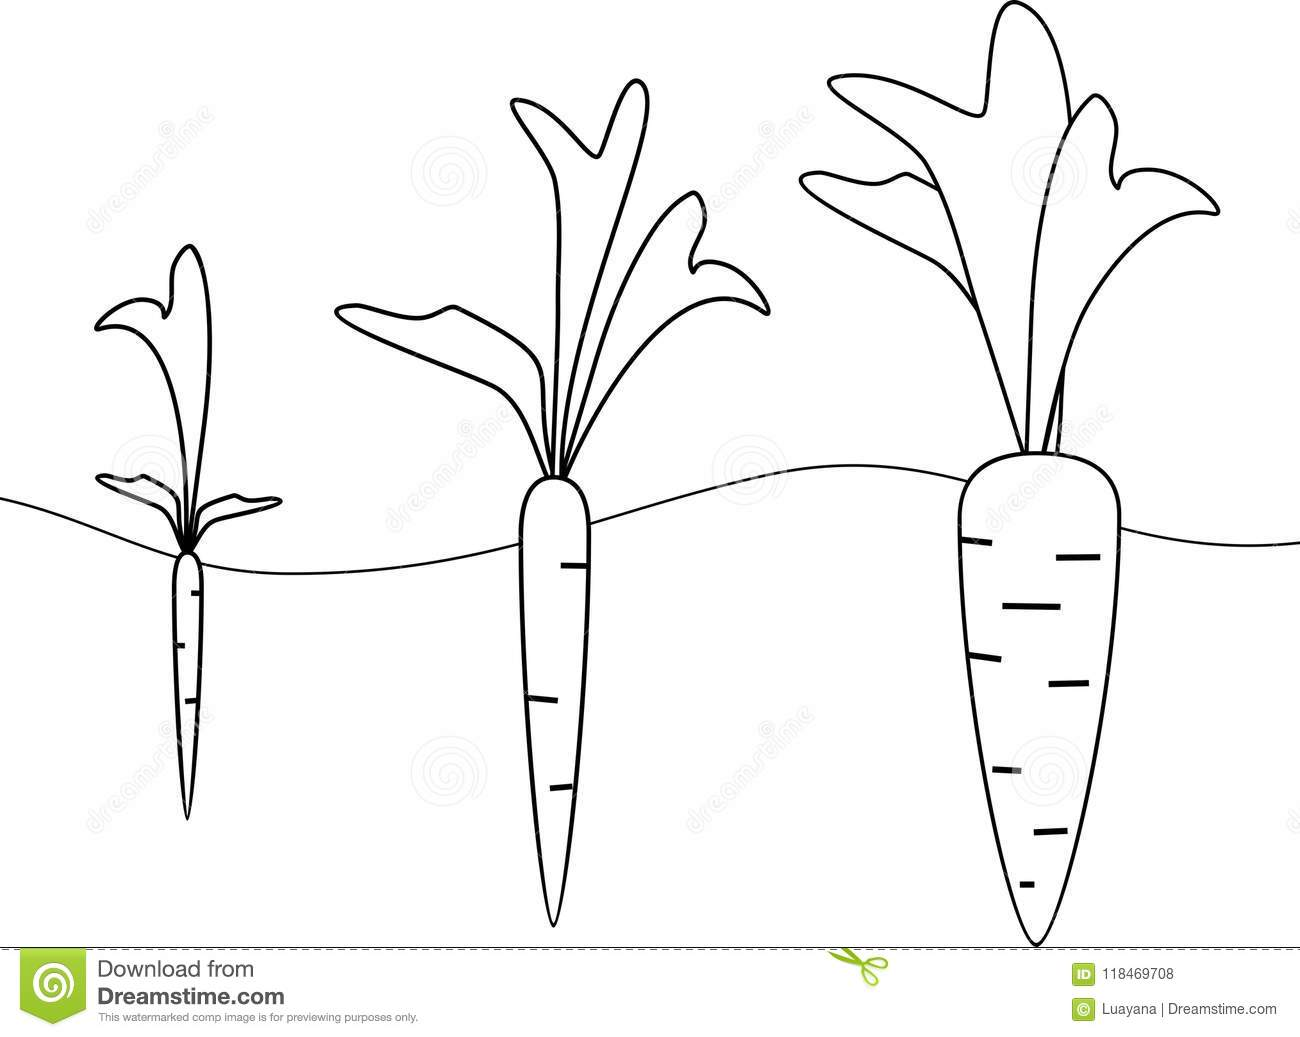 Carrot Growth Stages Stock Vector Illustration Of Grow